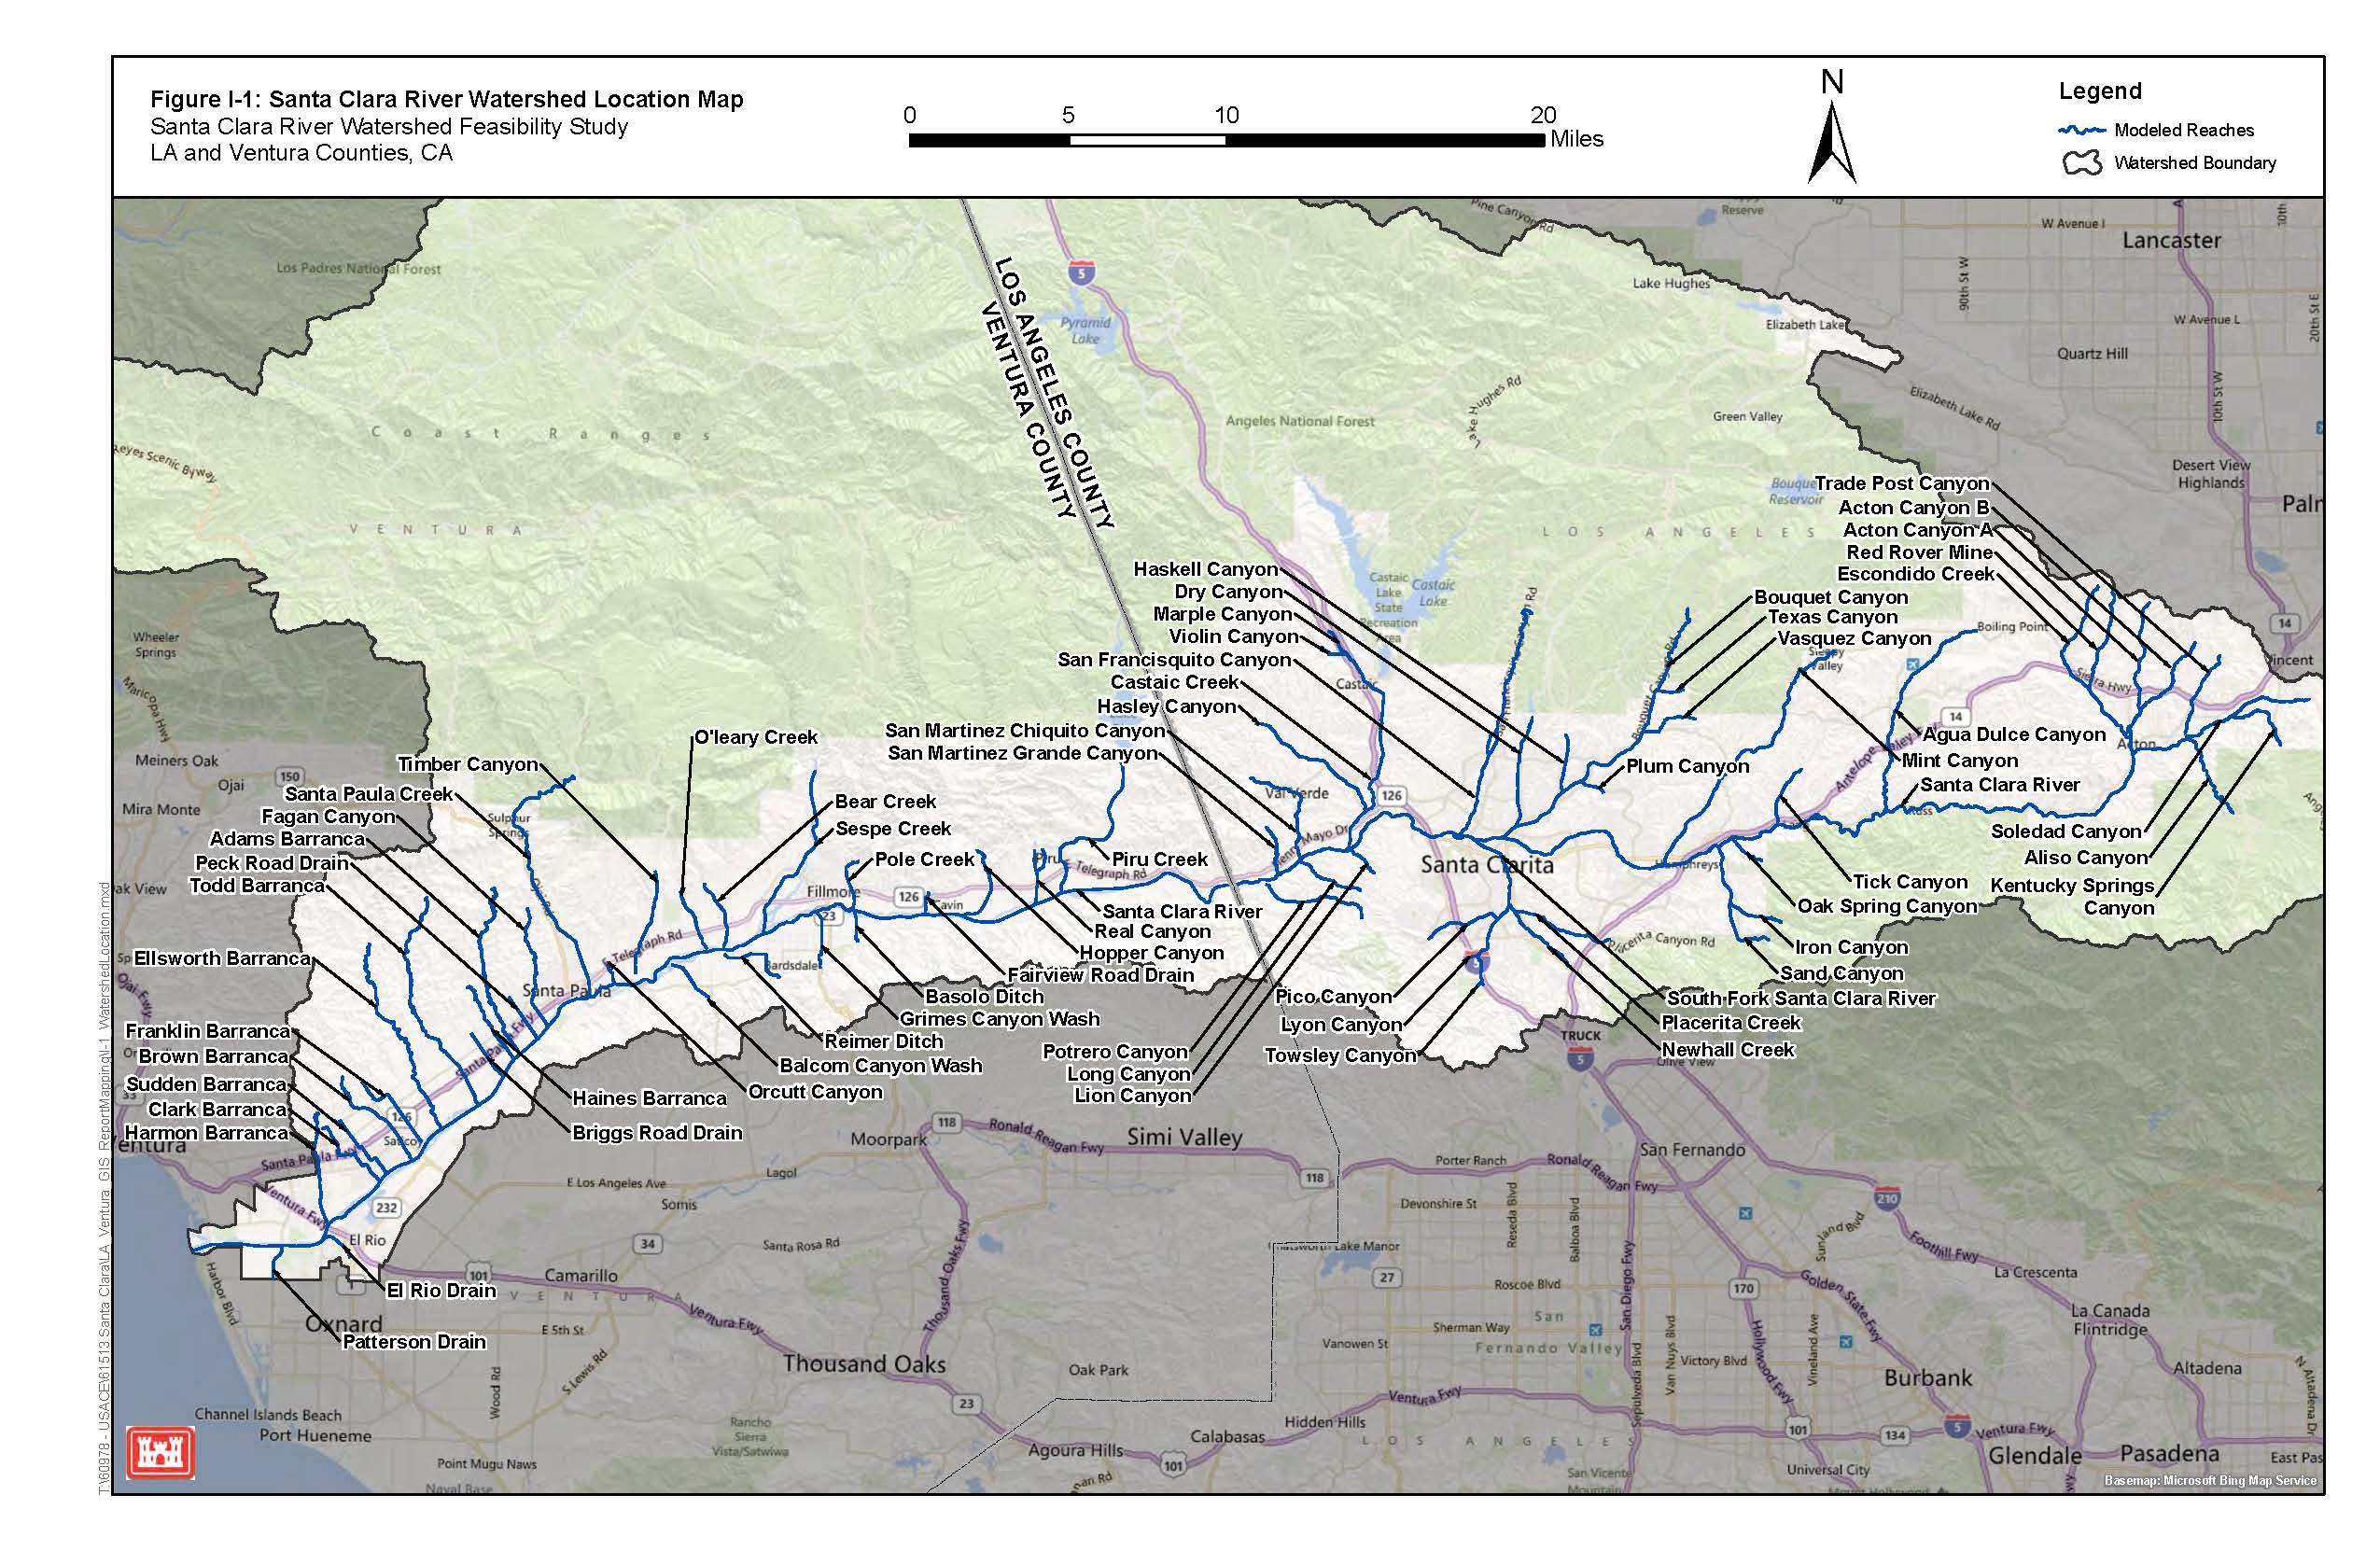 Los Angeles District Gt Missions Gt Civil Works Gt Projects Amp Stu S Gt Santa Clara River Watershed